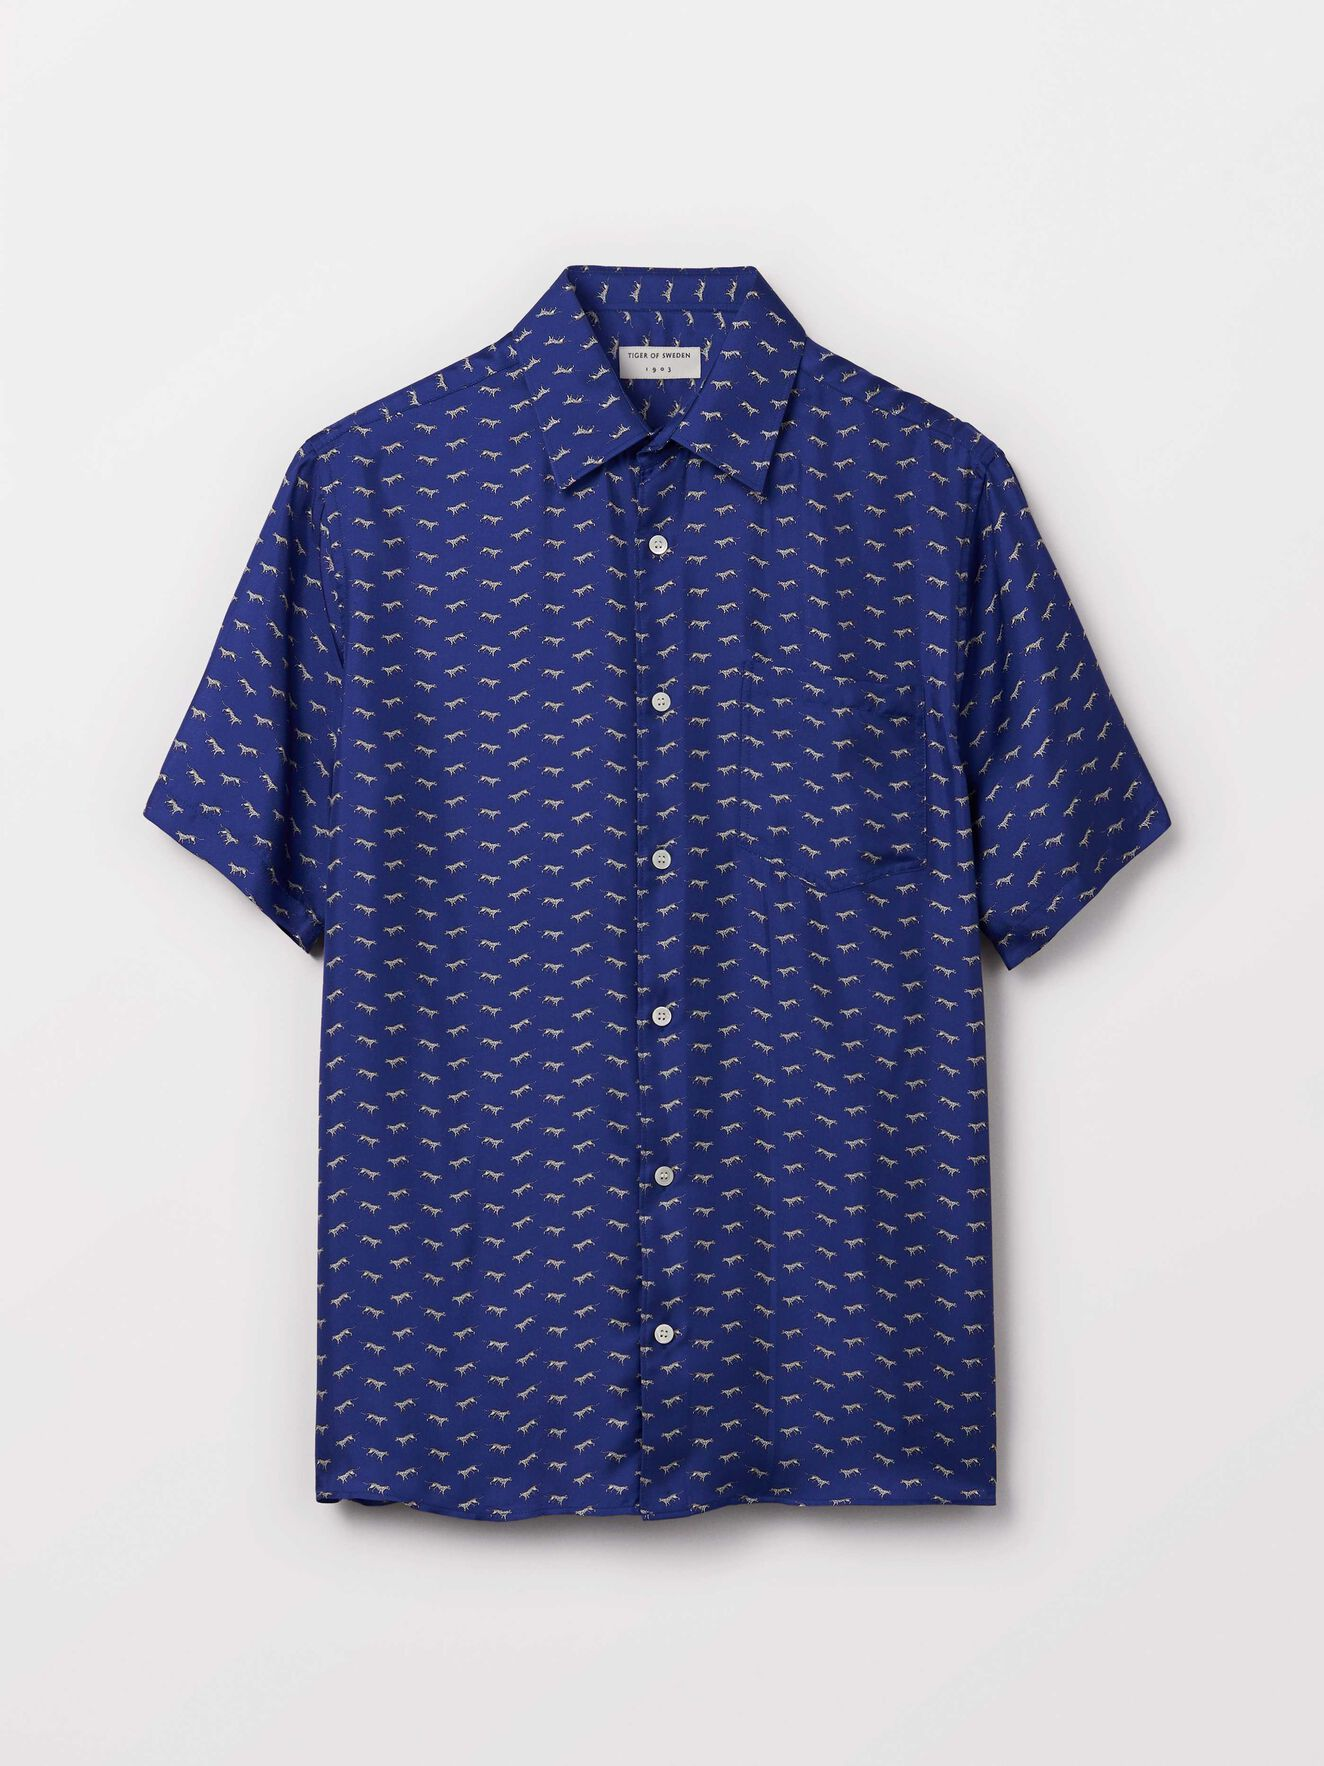 Fonzo Shirt in Deep Ocean Blue from Tiger of Sweden